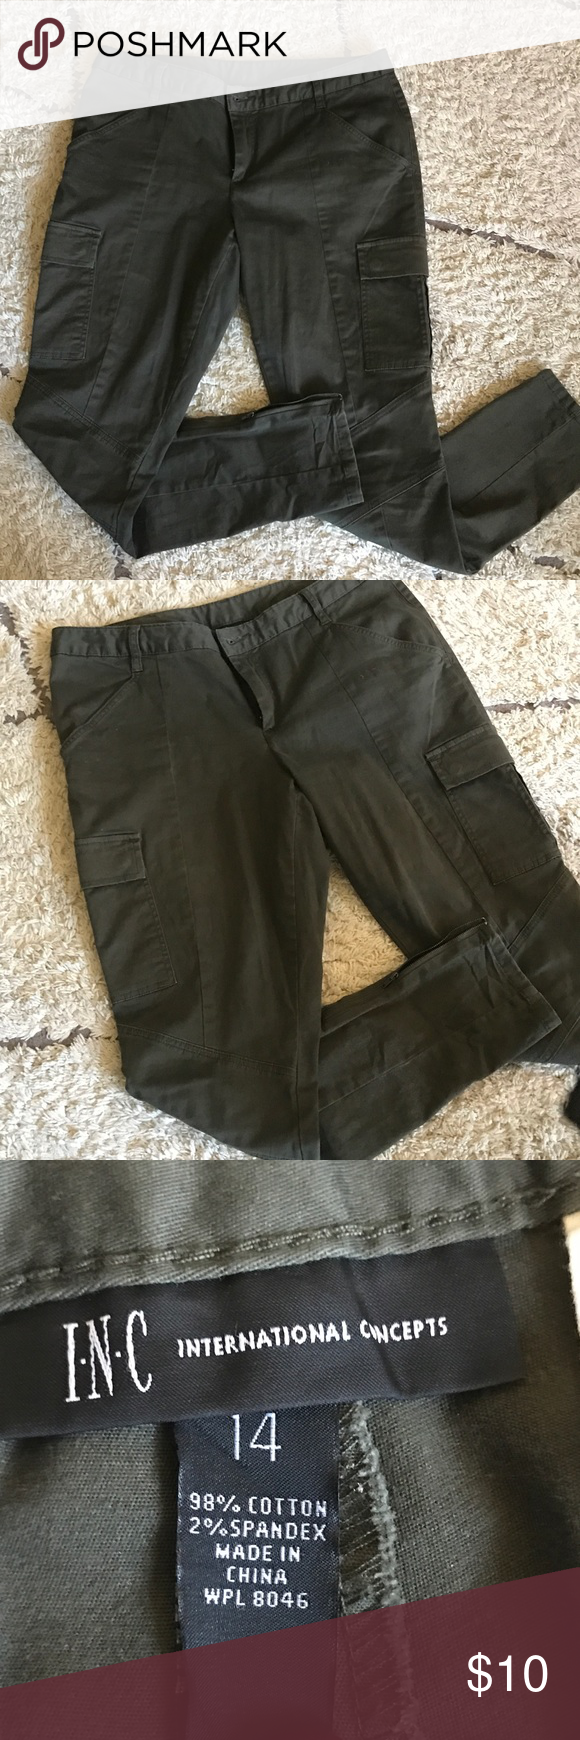 slim cut cargo pants Great slim cut cargo style pants with fun zipper detail at the ankles. Features flap back pockets and a moto detail below knee. In great condition only worn a handful of times. I.N.C Pants